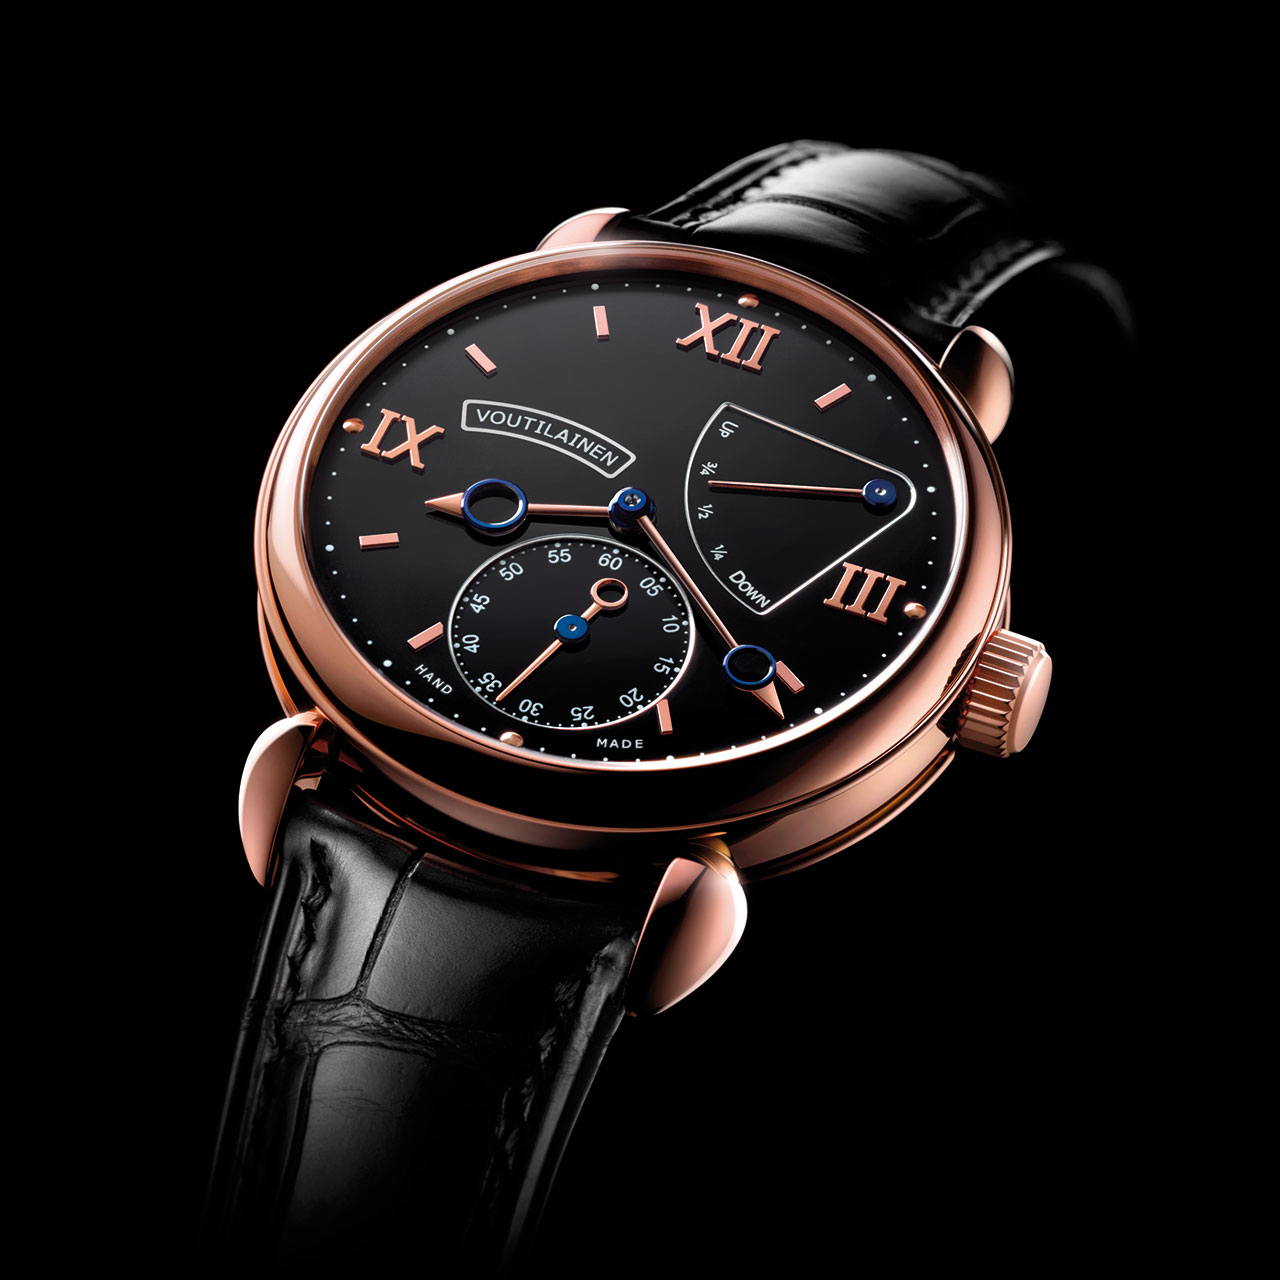 Voutilainen V-8R Mechanical Hand-wound Watch